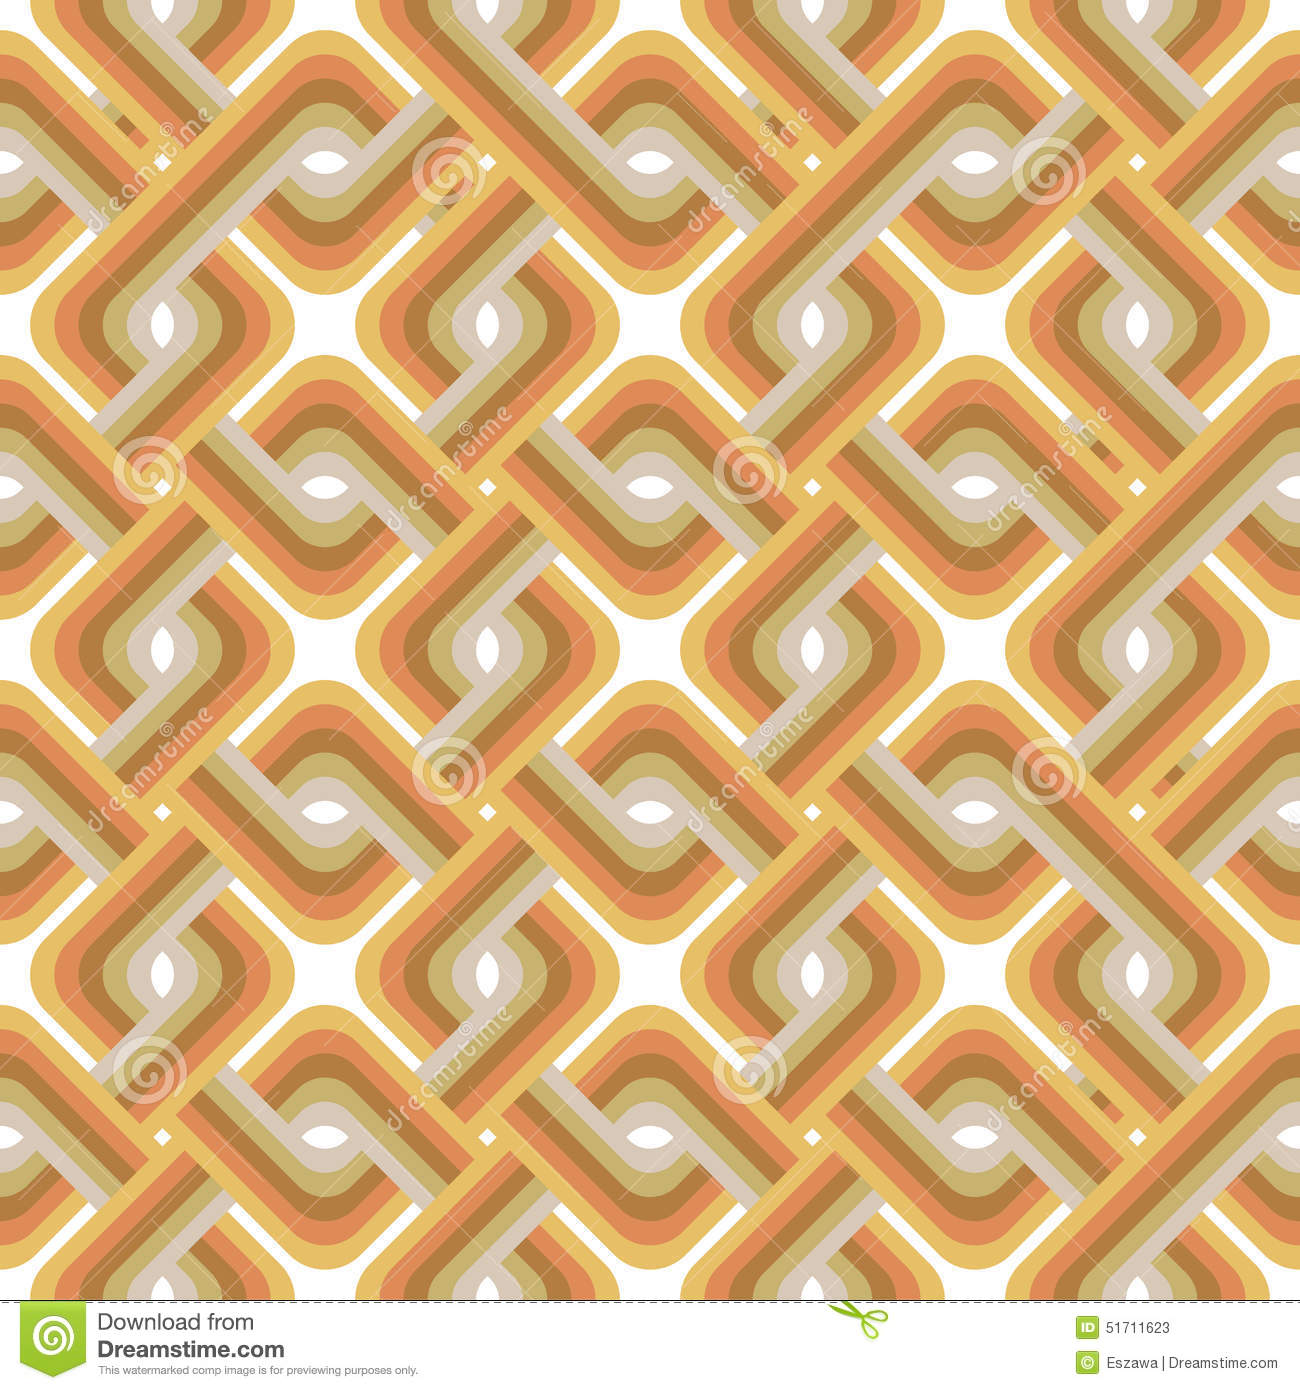 Retro wallpaper vintage vector pattern stock vector for Papel pintado vintage